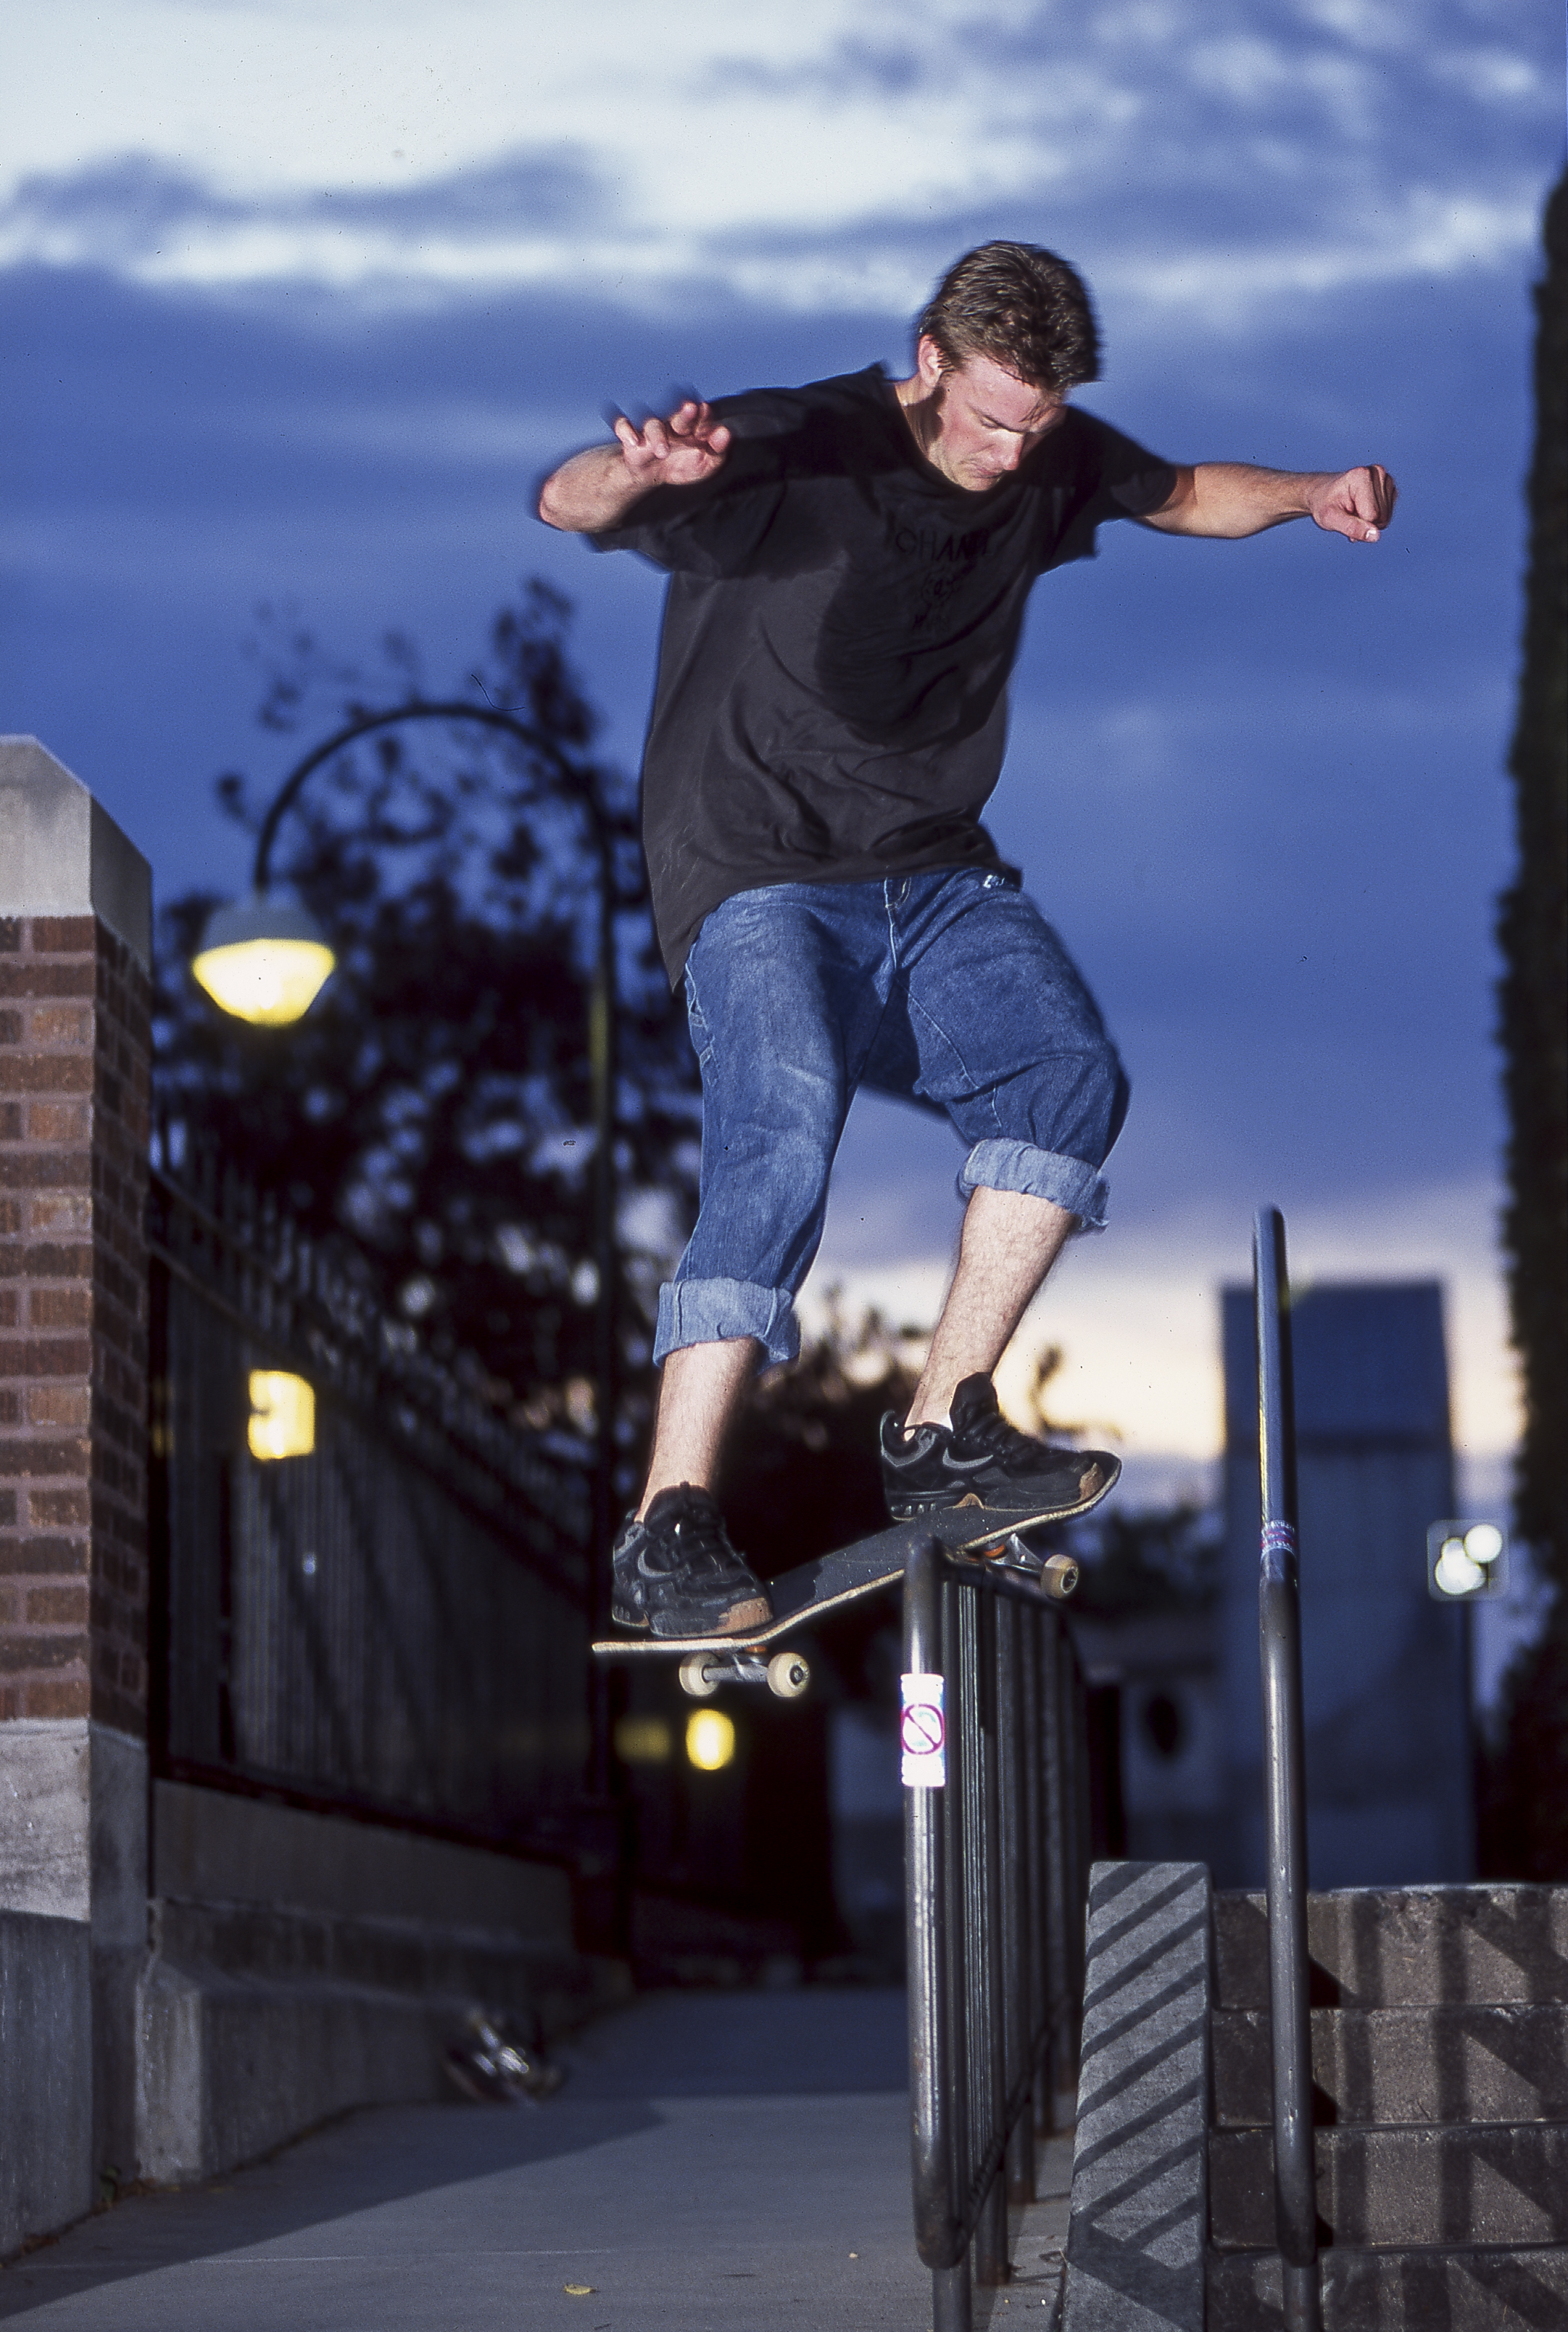 Ben Ragsdale with a feeble at  Ty Dicky Rail  when it was still a thread-the-needle situation.